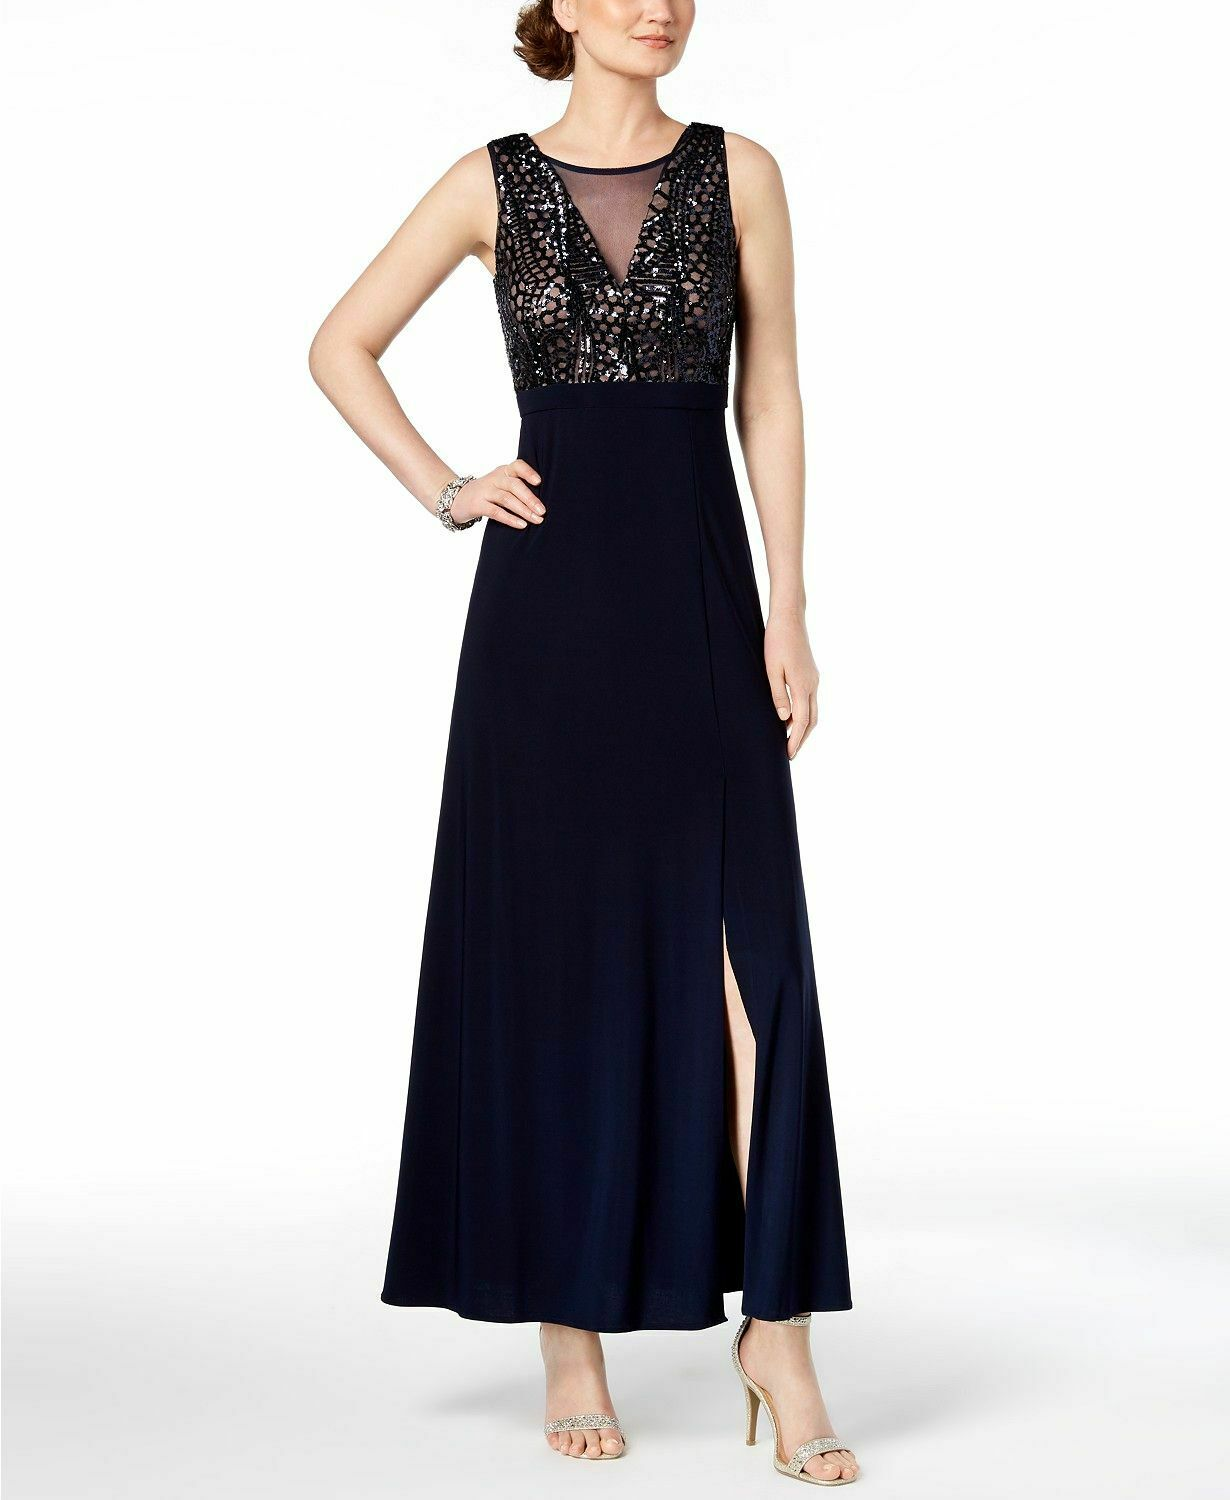 NIGHTWAY WOMEN'S blueE SEQUINED ILLUSION MESH GOWN SLEEVELESS DRESS SIZE 10